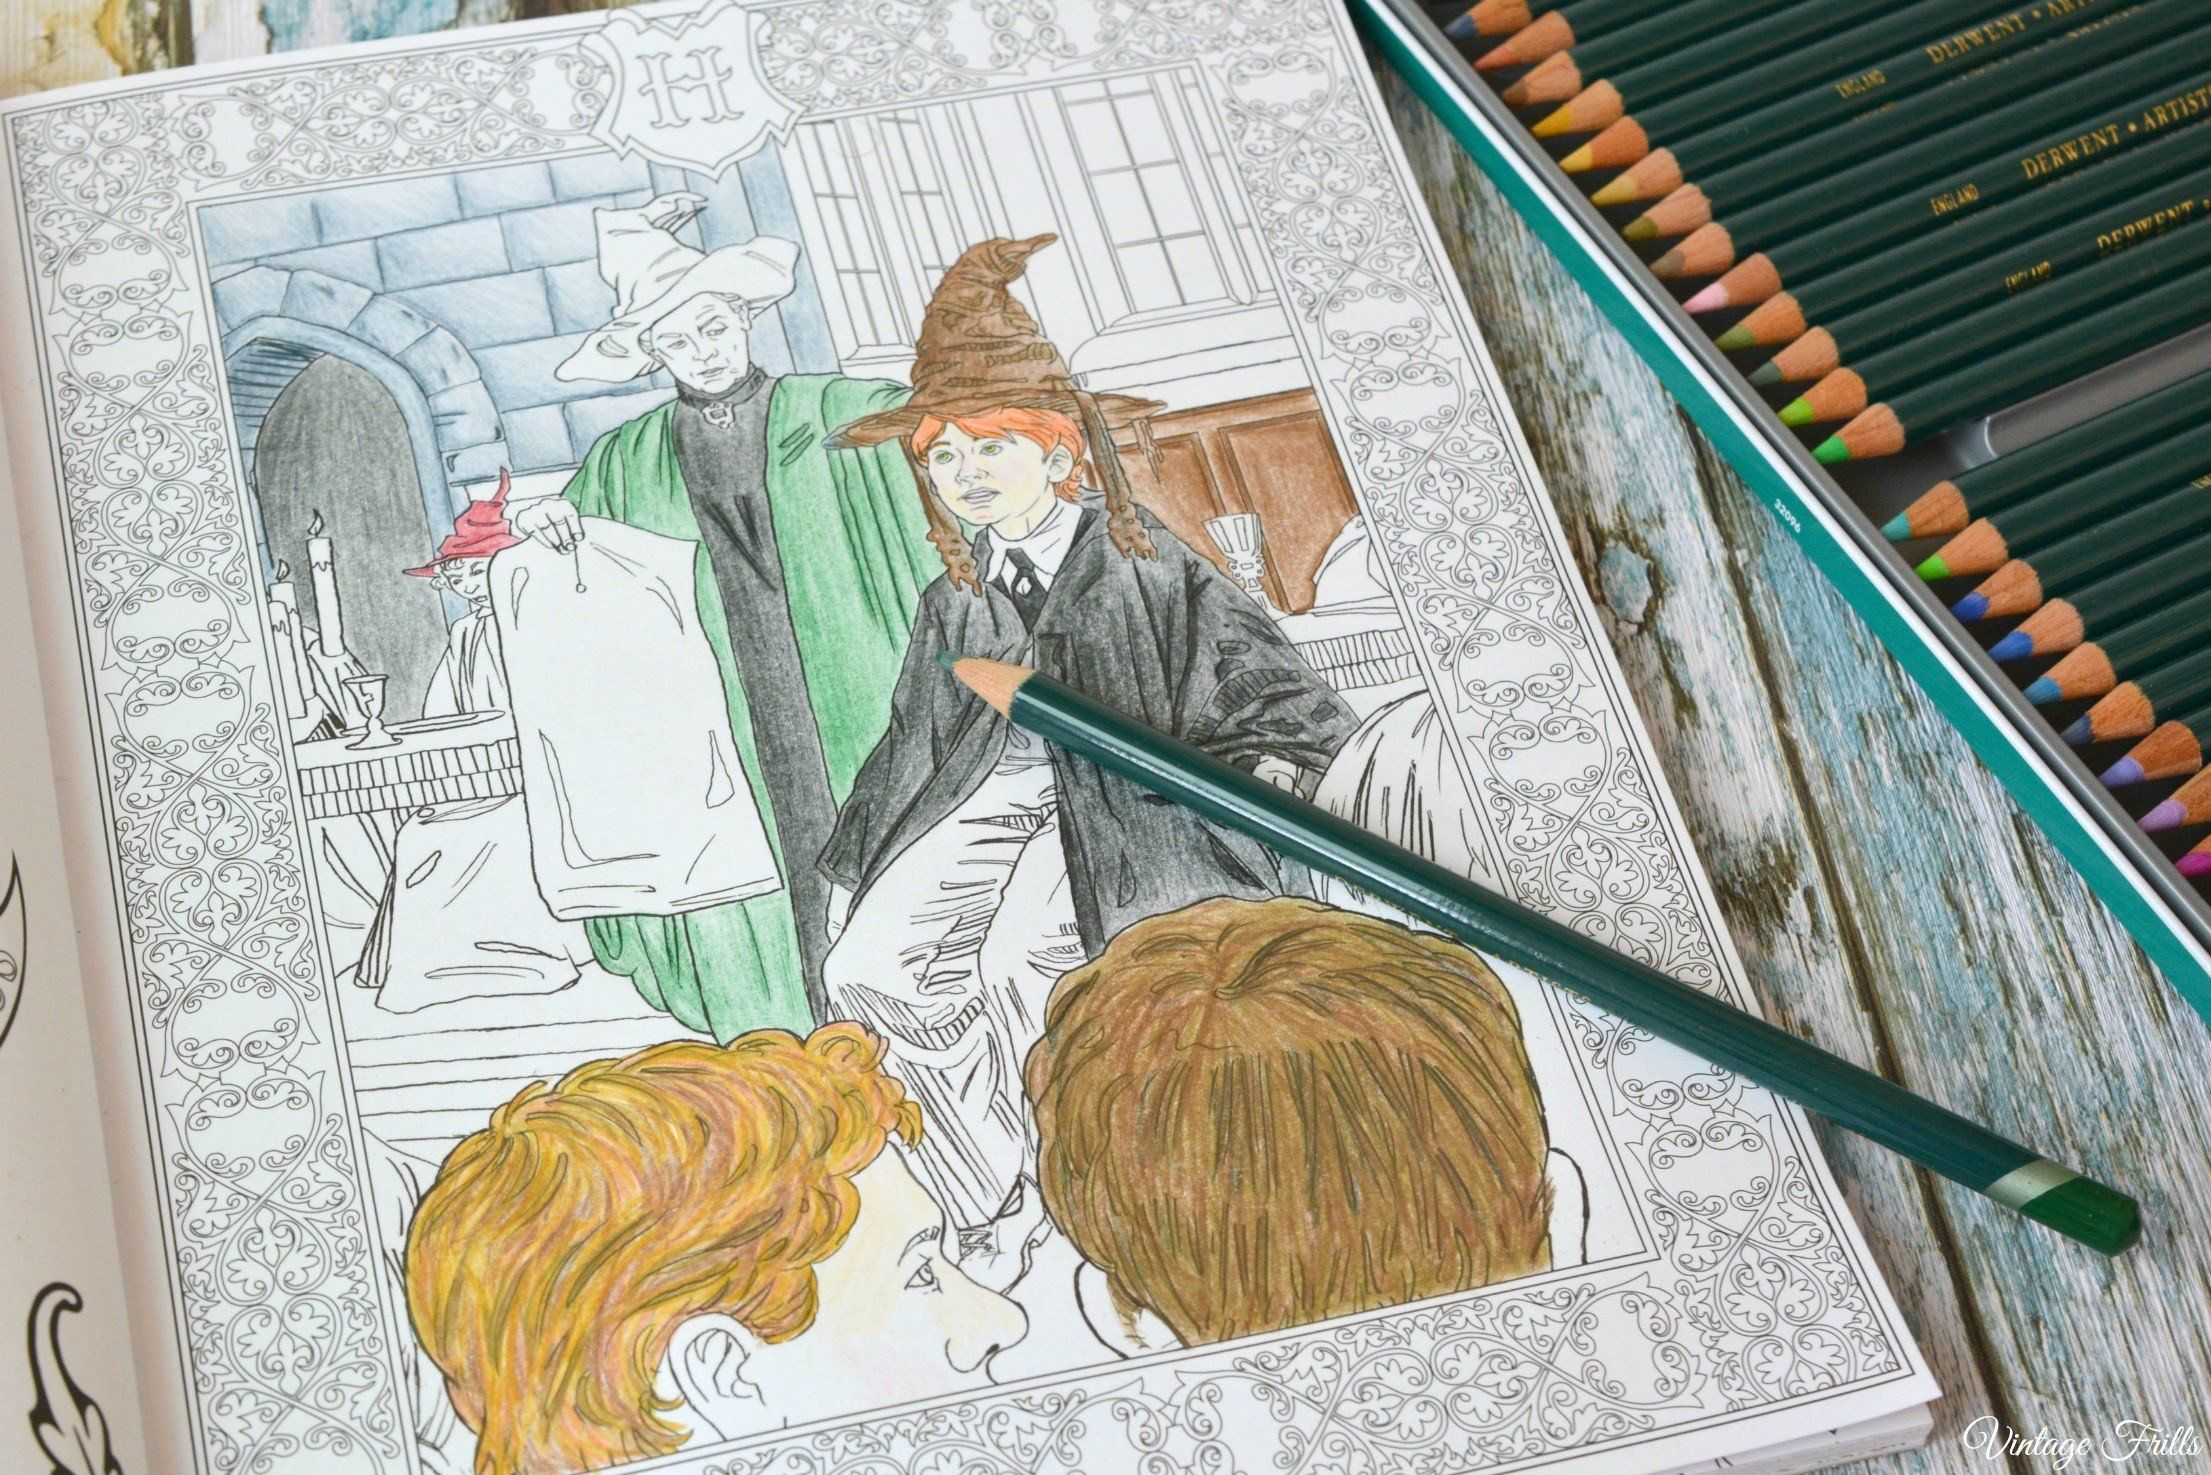 Harry Potter Coloring Book Inspirational Reddit I Finished Coloring My Harry Potter Color Harry Potter Coloring Book Harry Potter Coloring Pages Coloring Books